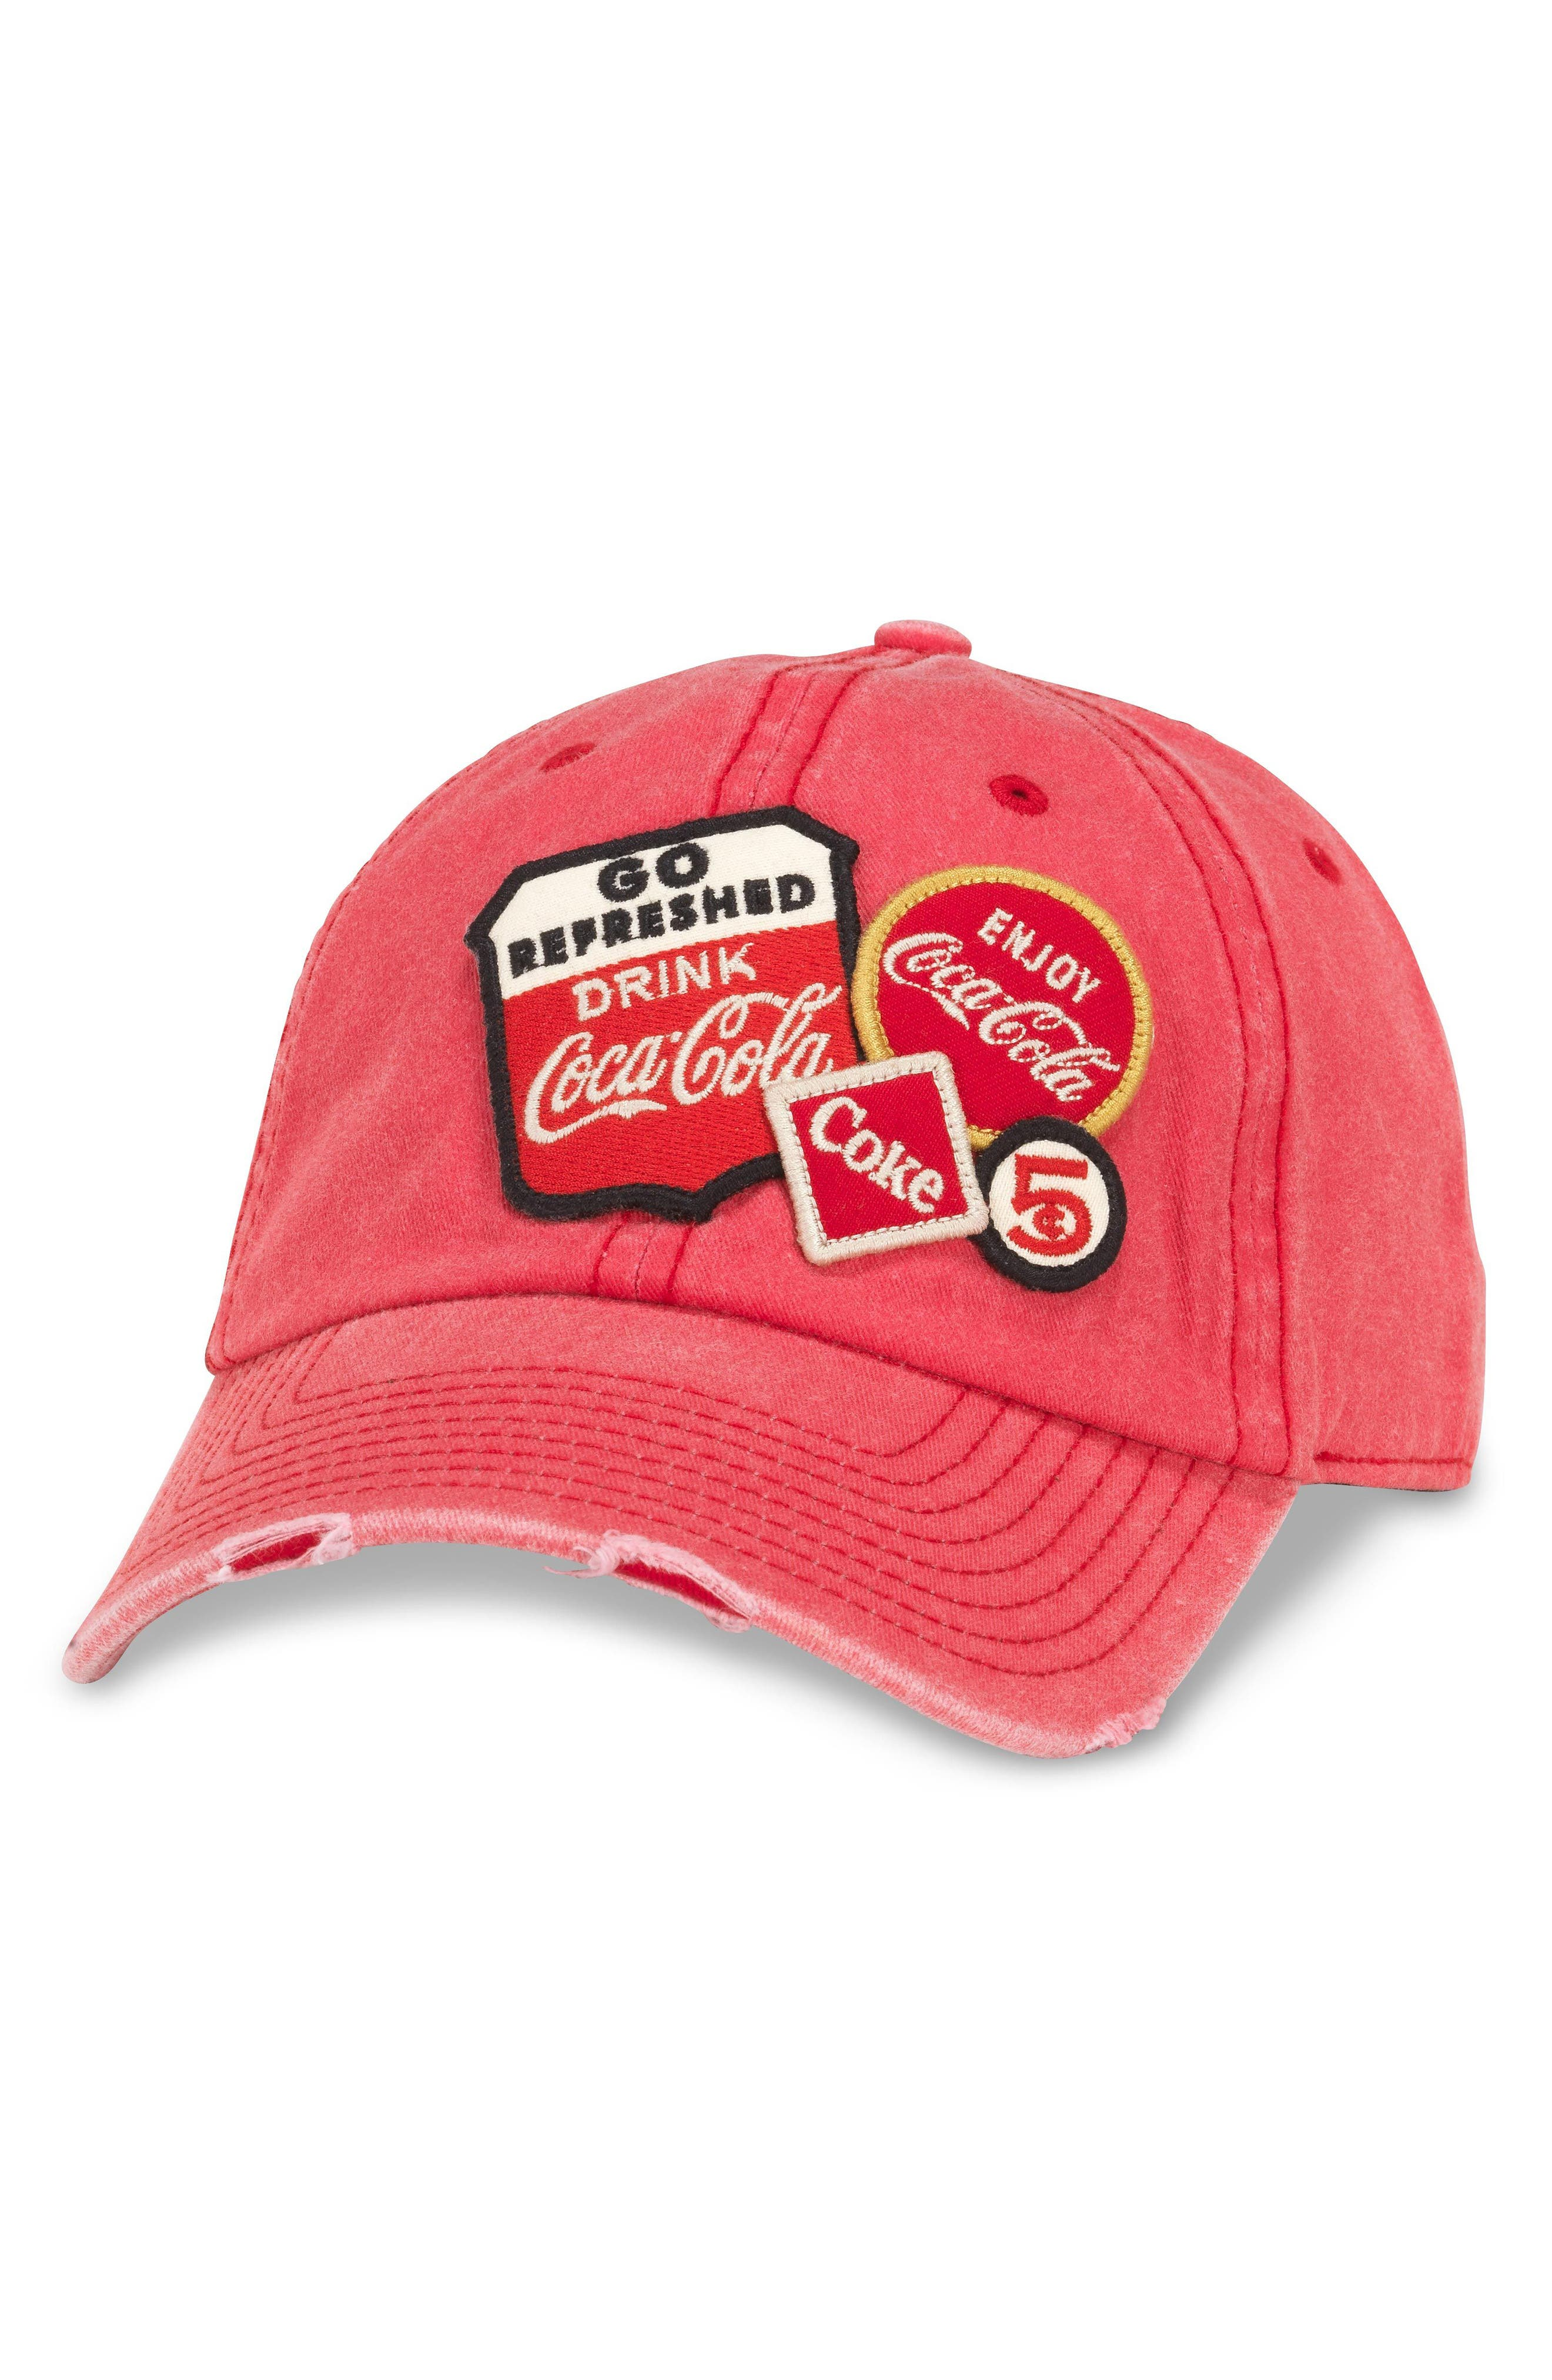 Iconic - Coke<sup>®</sup> Ball Cap,                         Main,                         color, Red